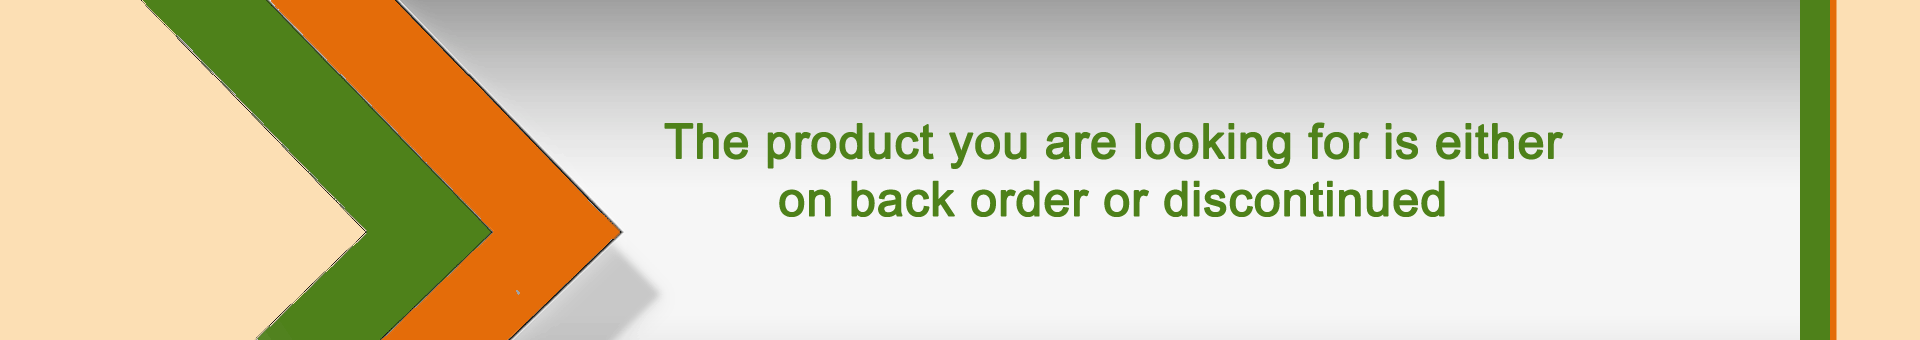 The product you are looking for is either on back order or discontinued.